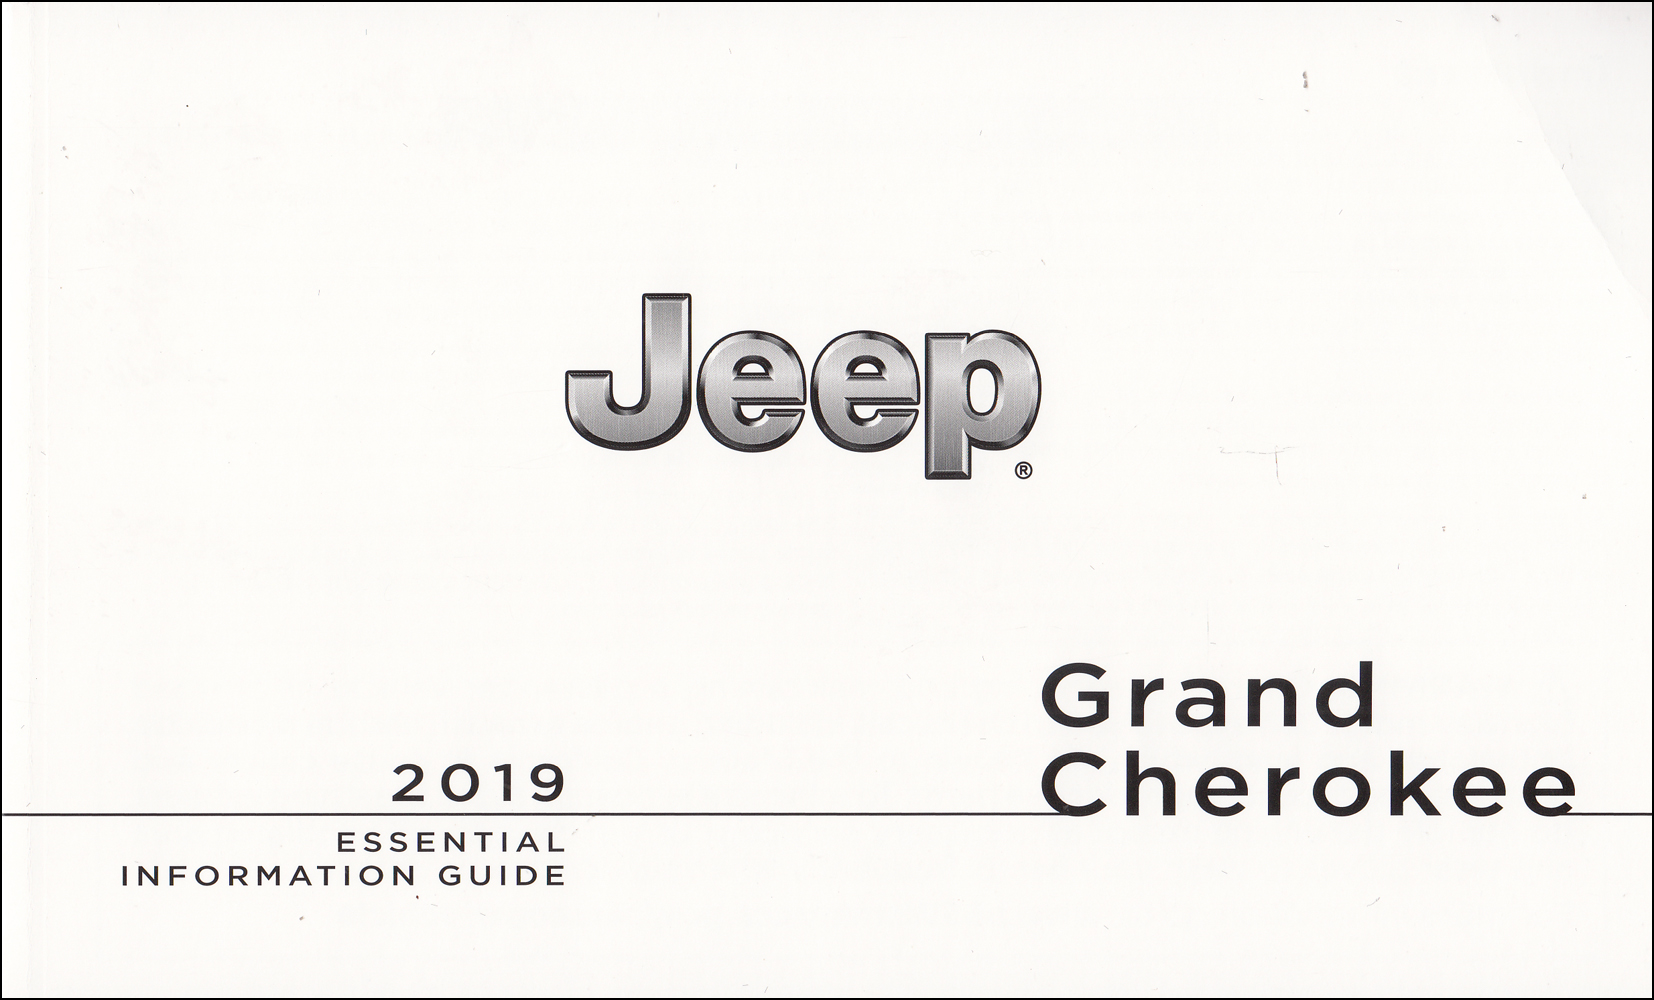 2019 Jeep Grand Cherokee Owners Manual Essential